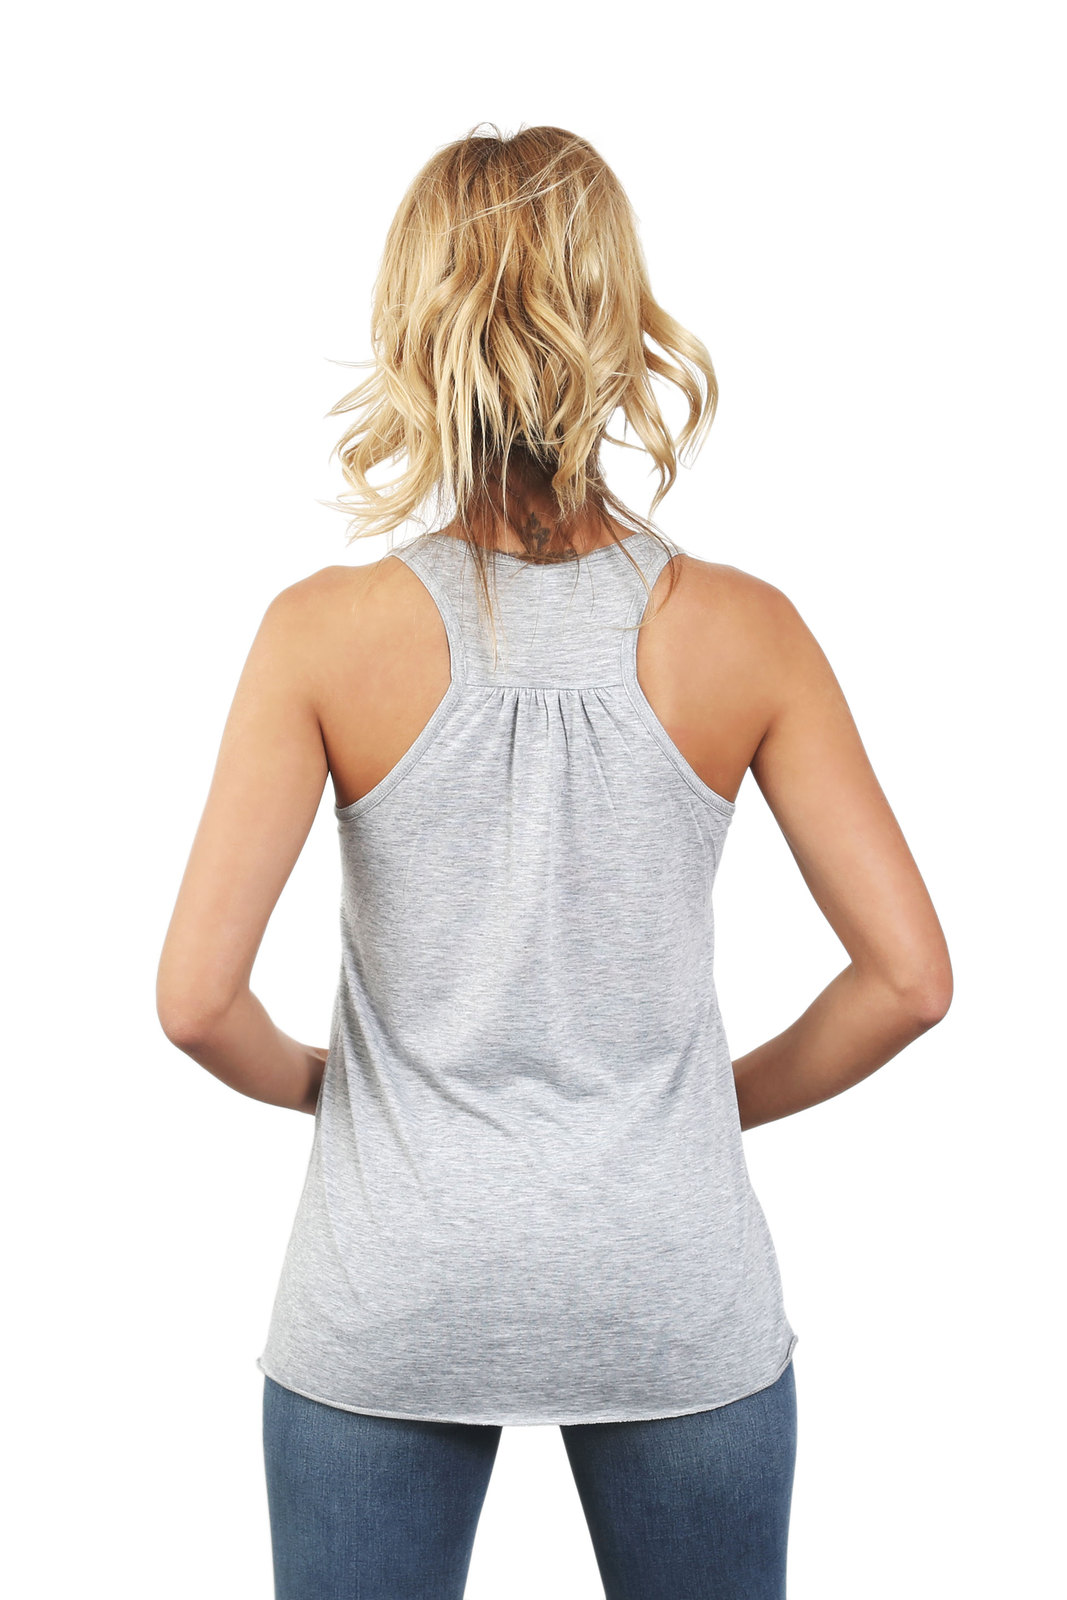 Thread Tank Wednes. Wednesday Women's Sleeveless Flowy Racerback Tank Top Sport